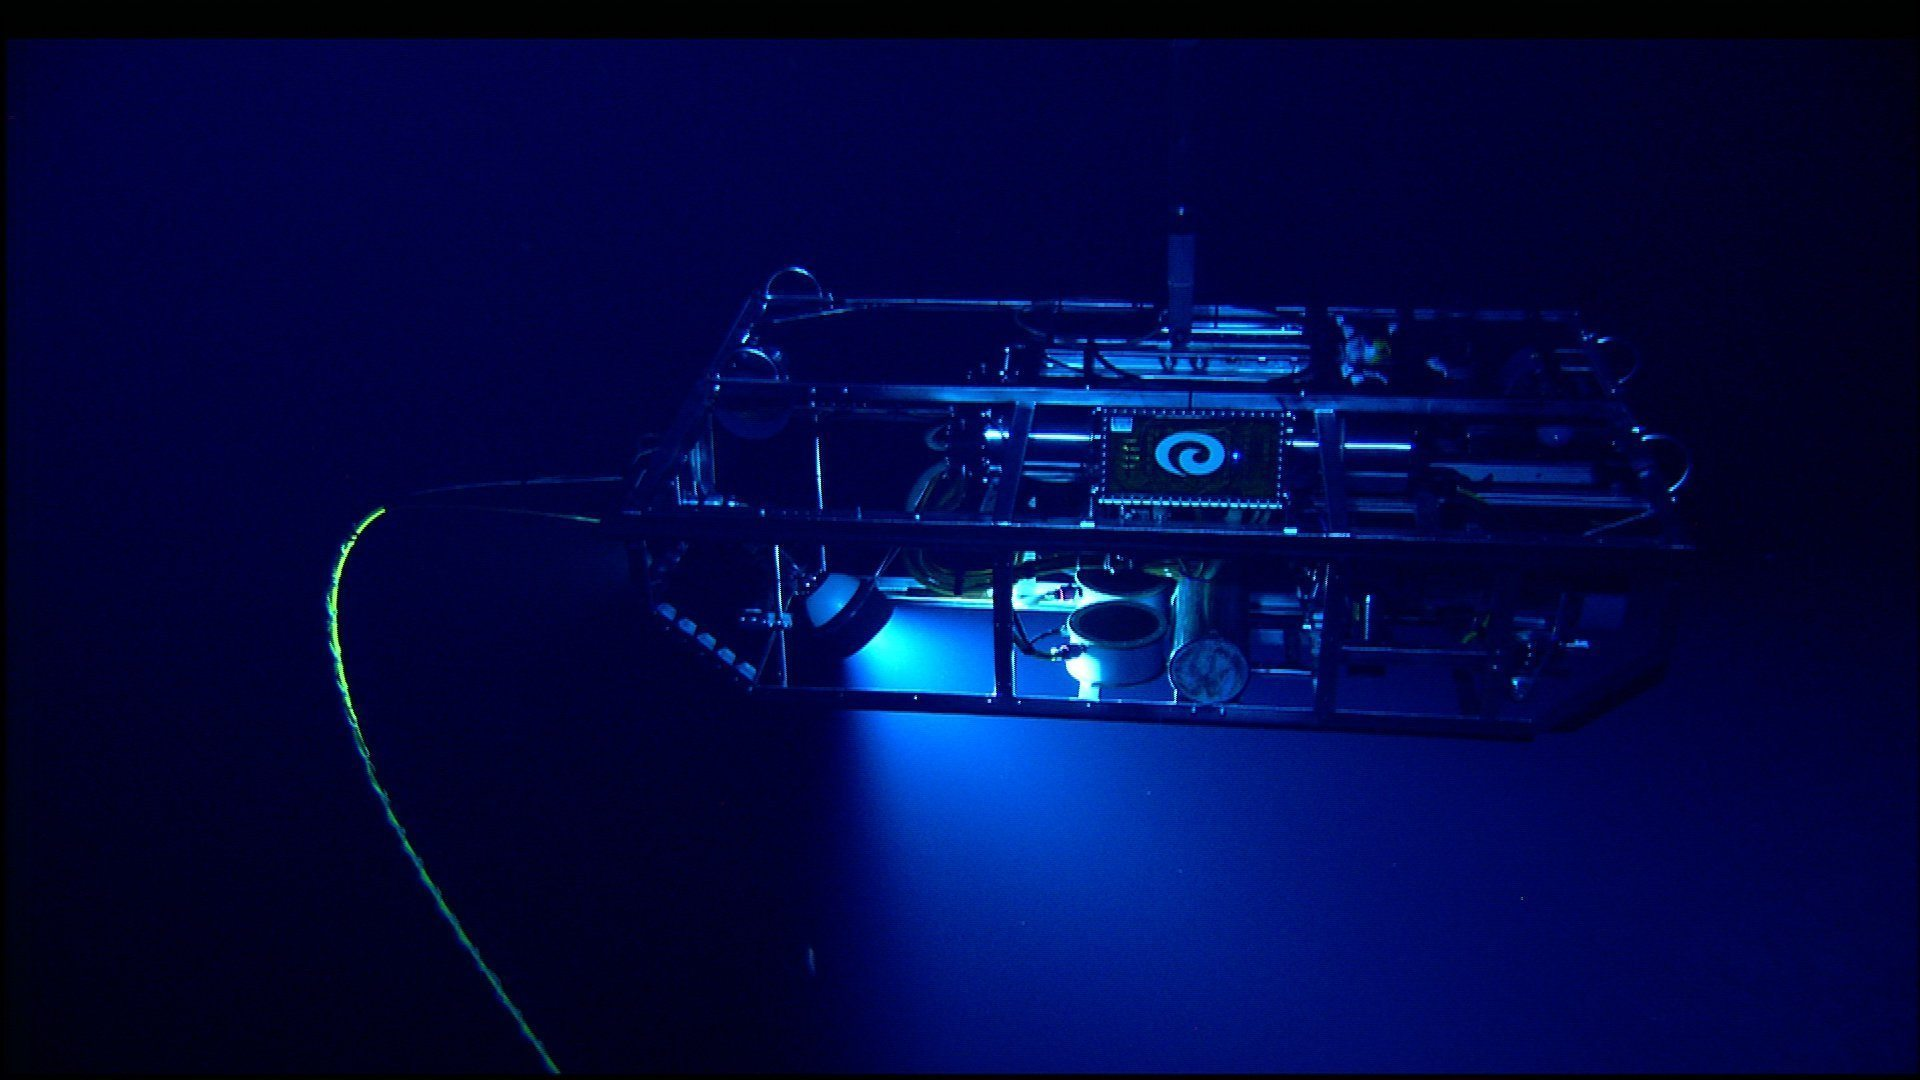 Image: Argus the remotely operated vehicle working underwater